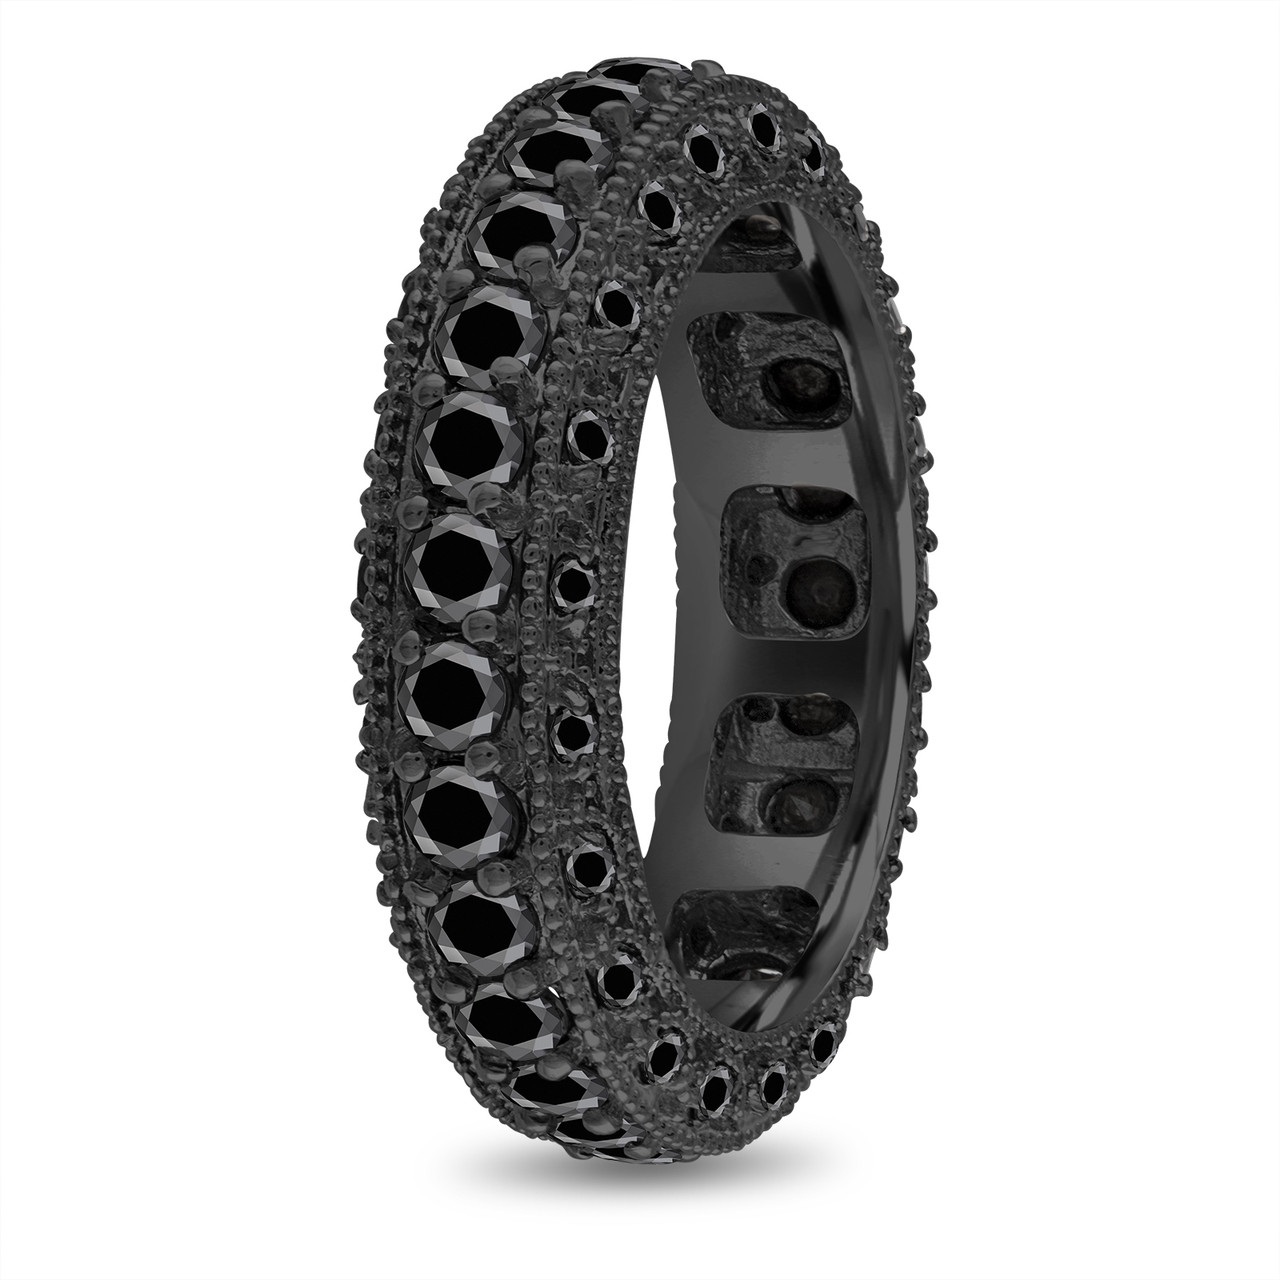 Vintage Style Black Diamonds Mens Wedding Band Eternity Ring